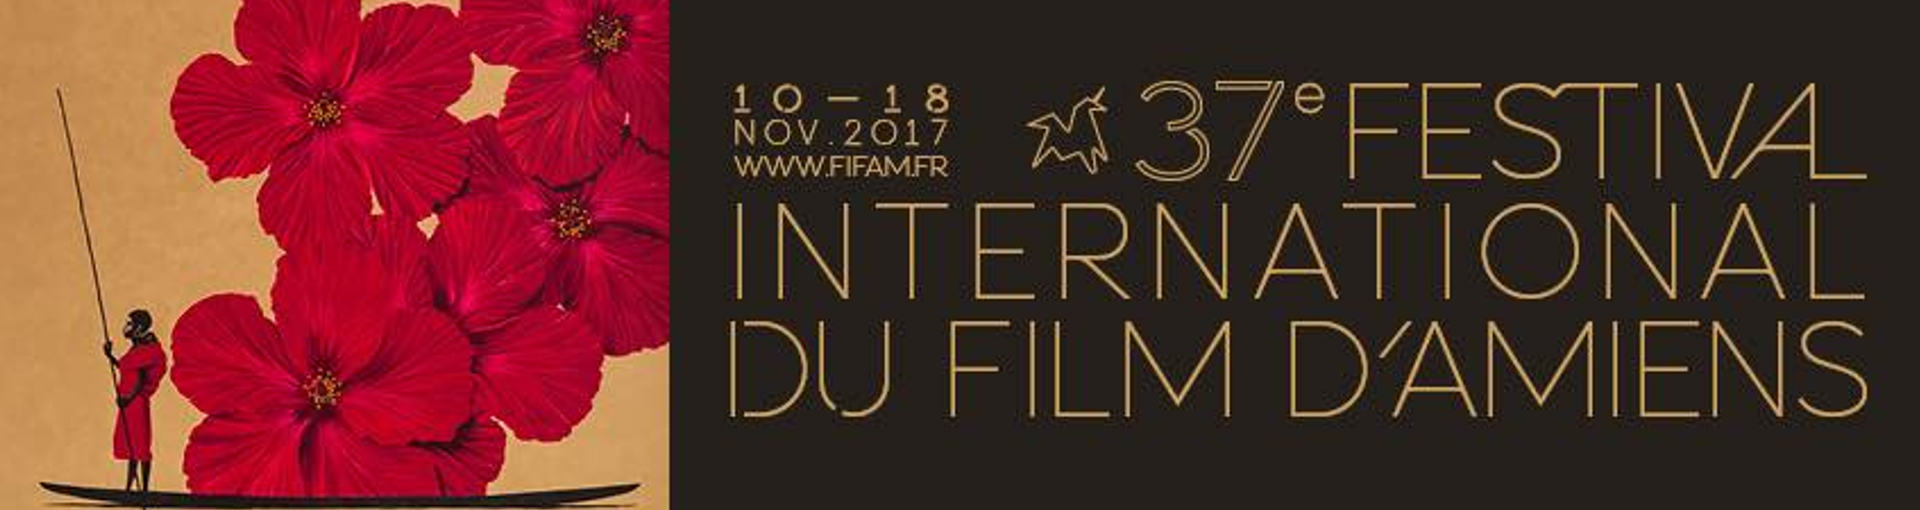 FESTIVAL INTERNATIONAL DU FILM D'AMIENS